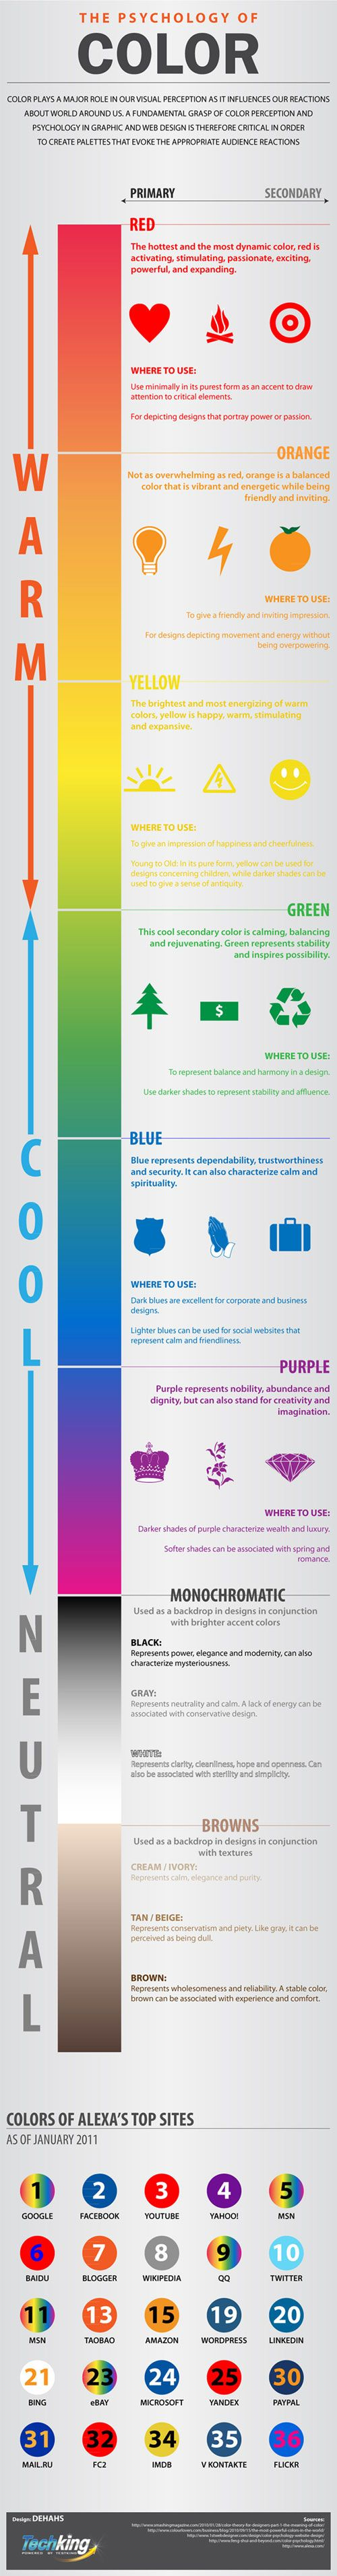 This is an infographic that successfully mimics a color selection found in digital programs, and accurately goes through each color in a fun yet organized manner.